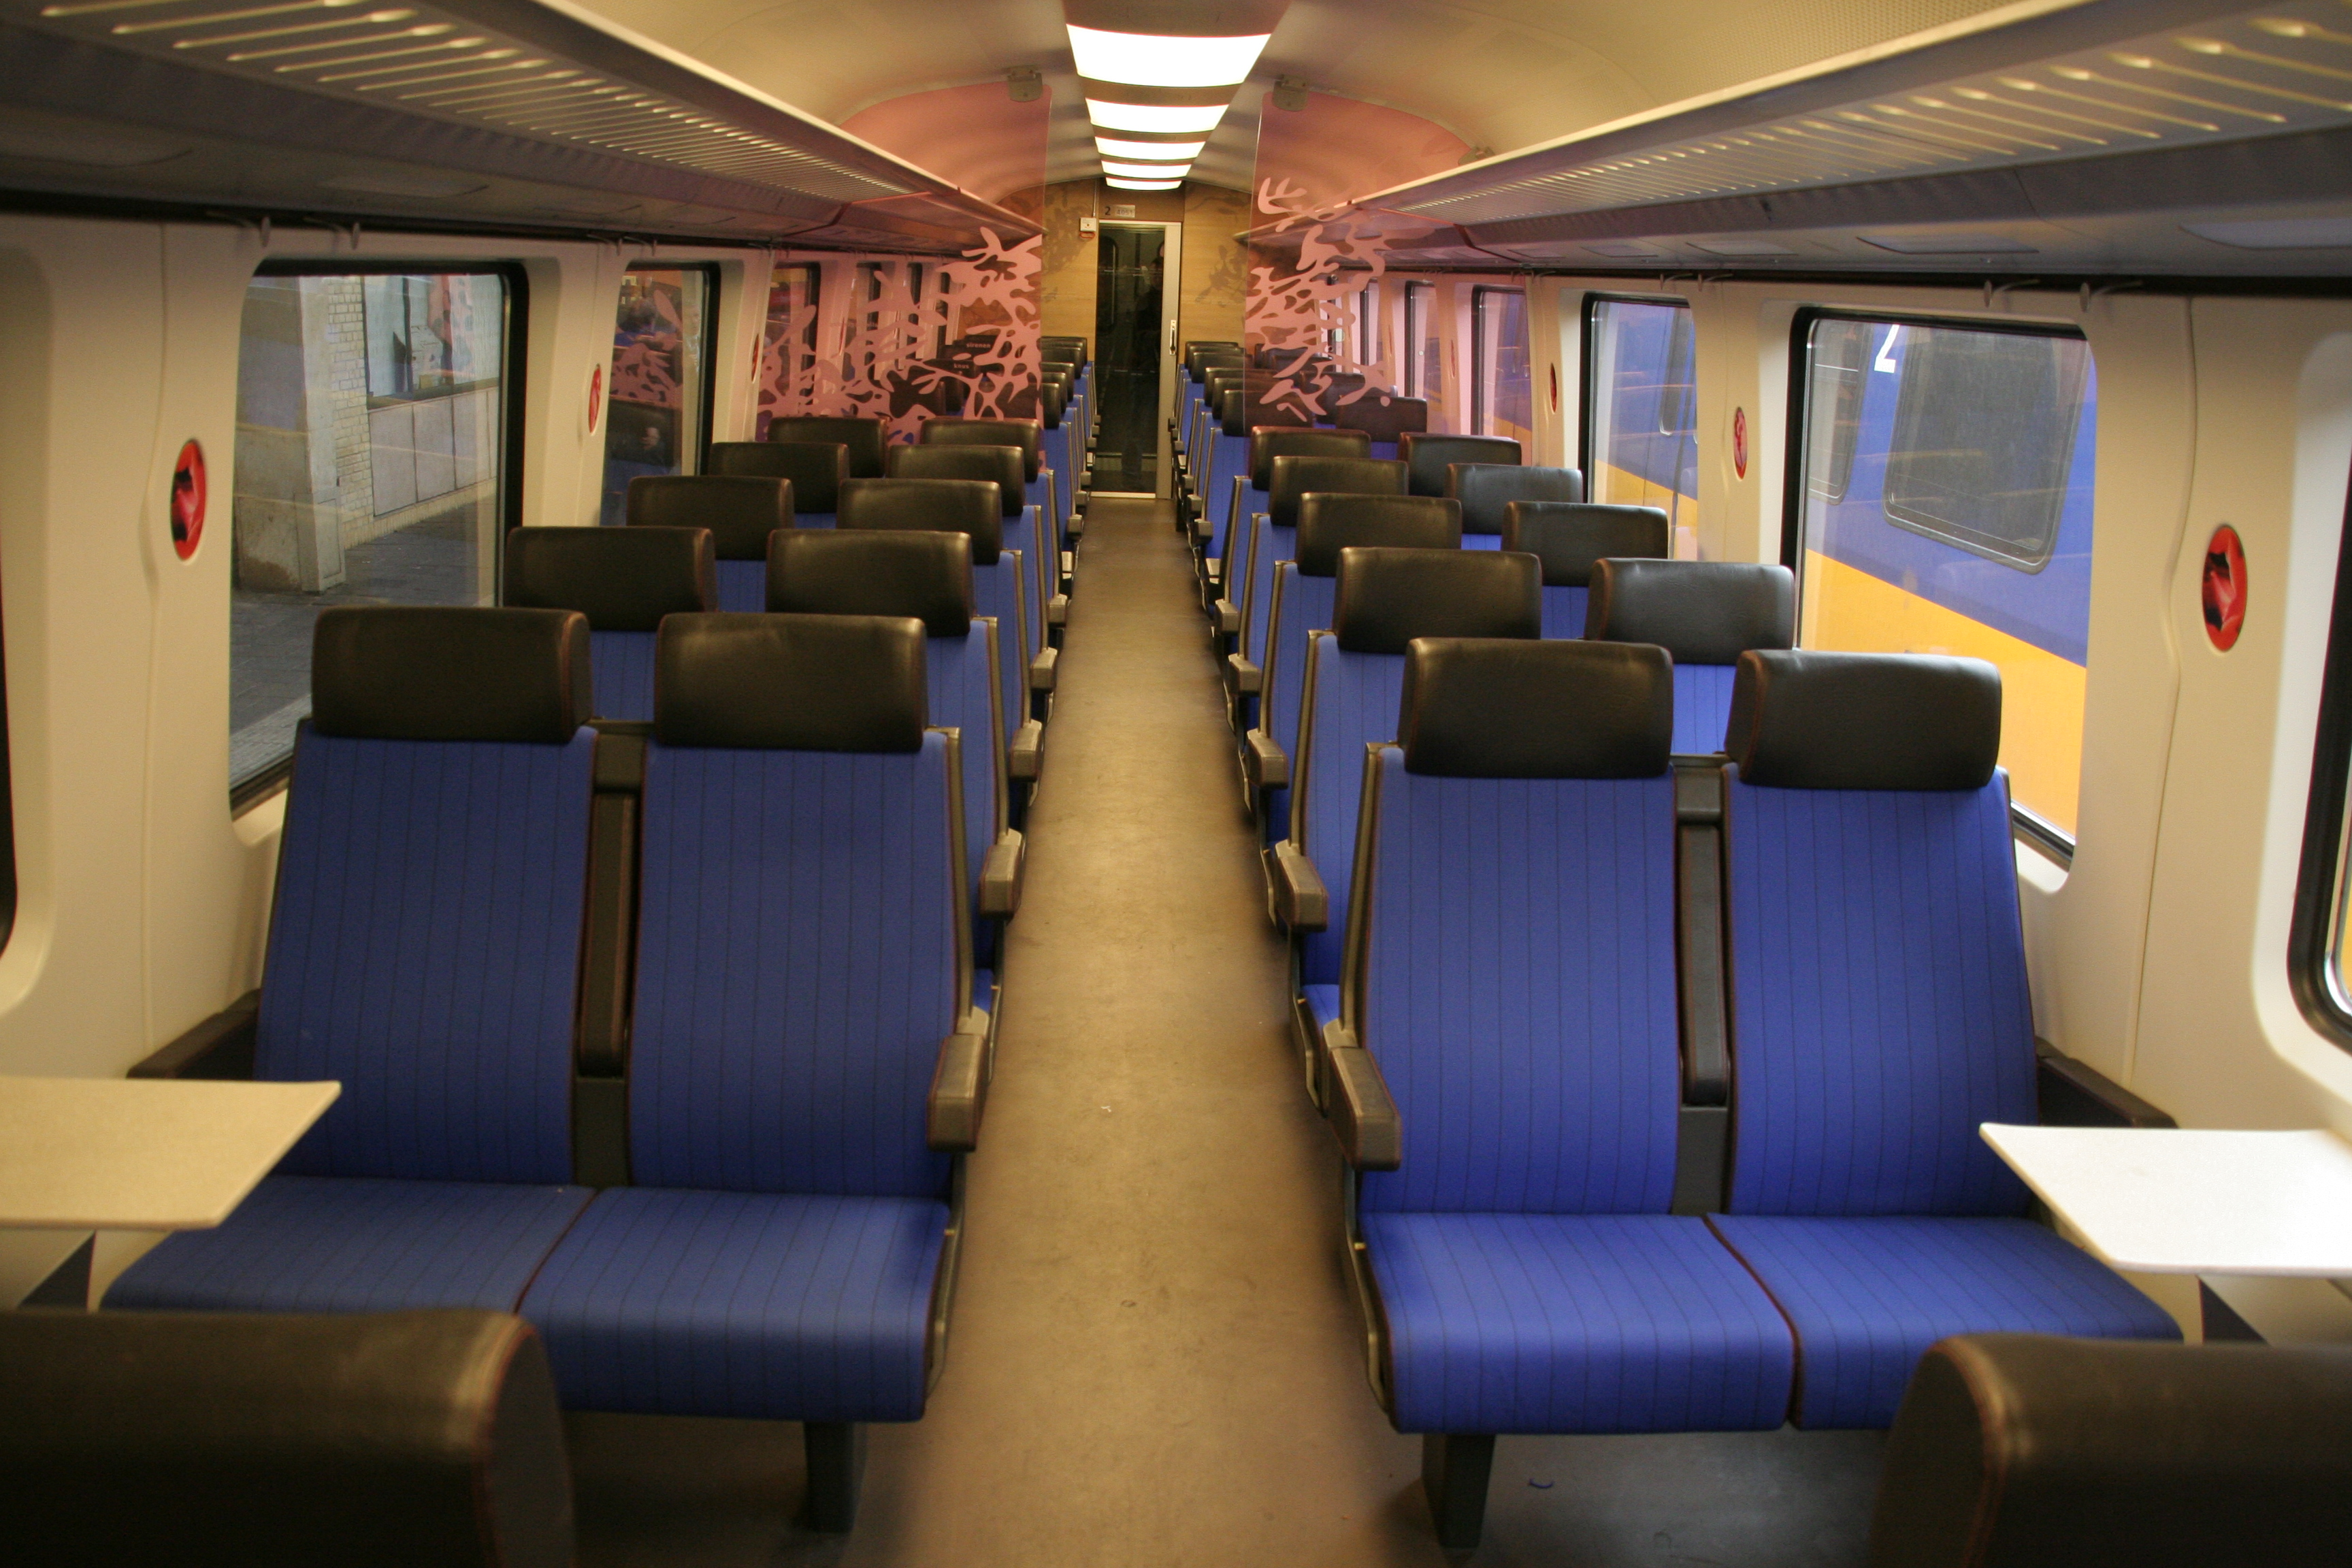 Ns Icr Interieur Interior Design In Means Of Transportation